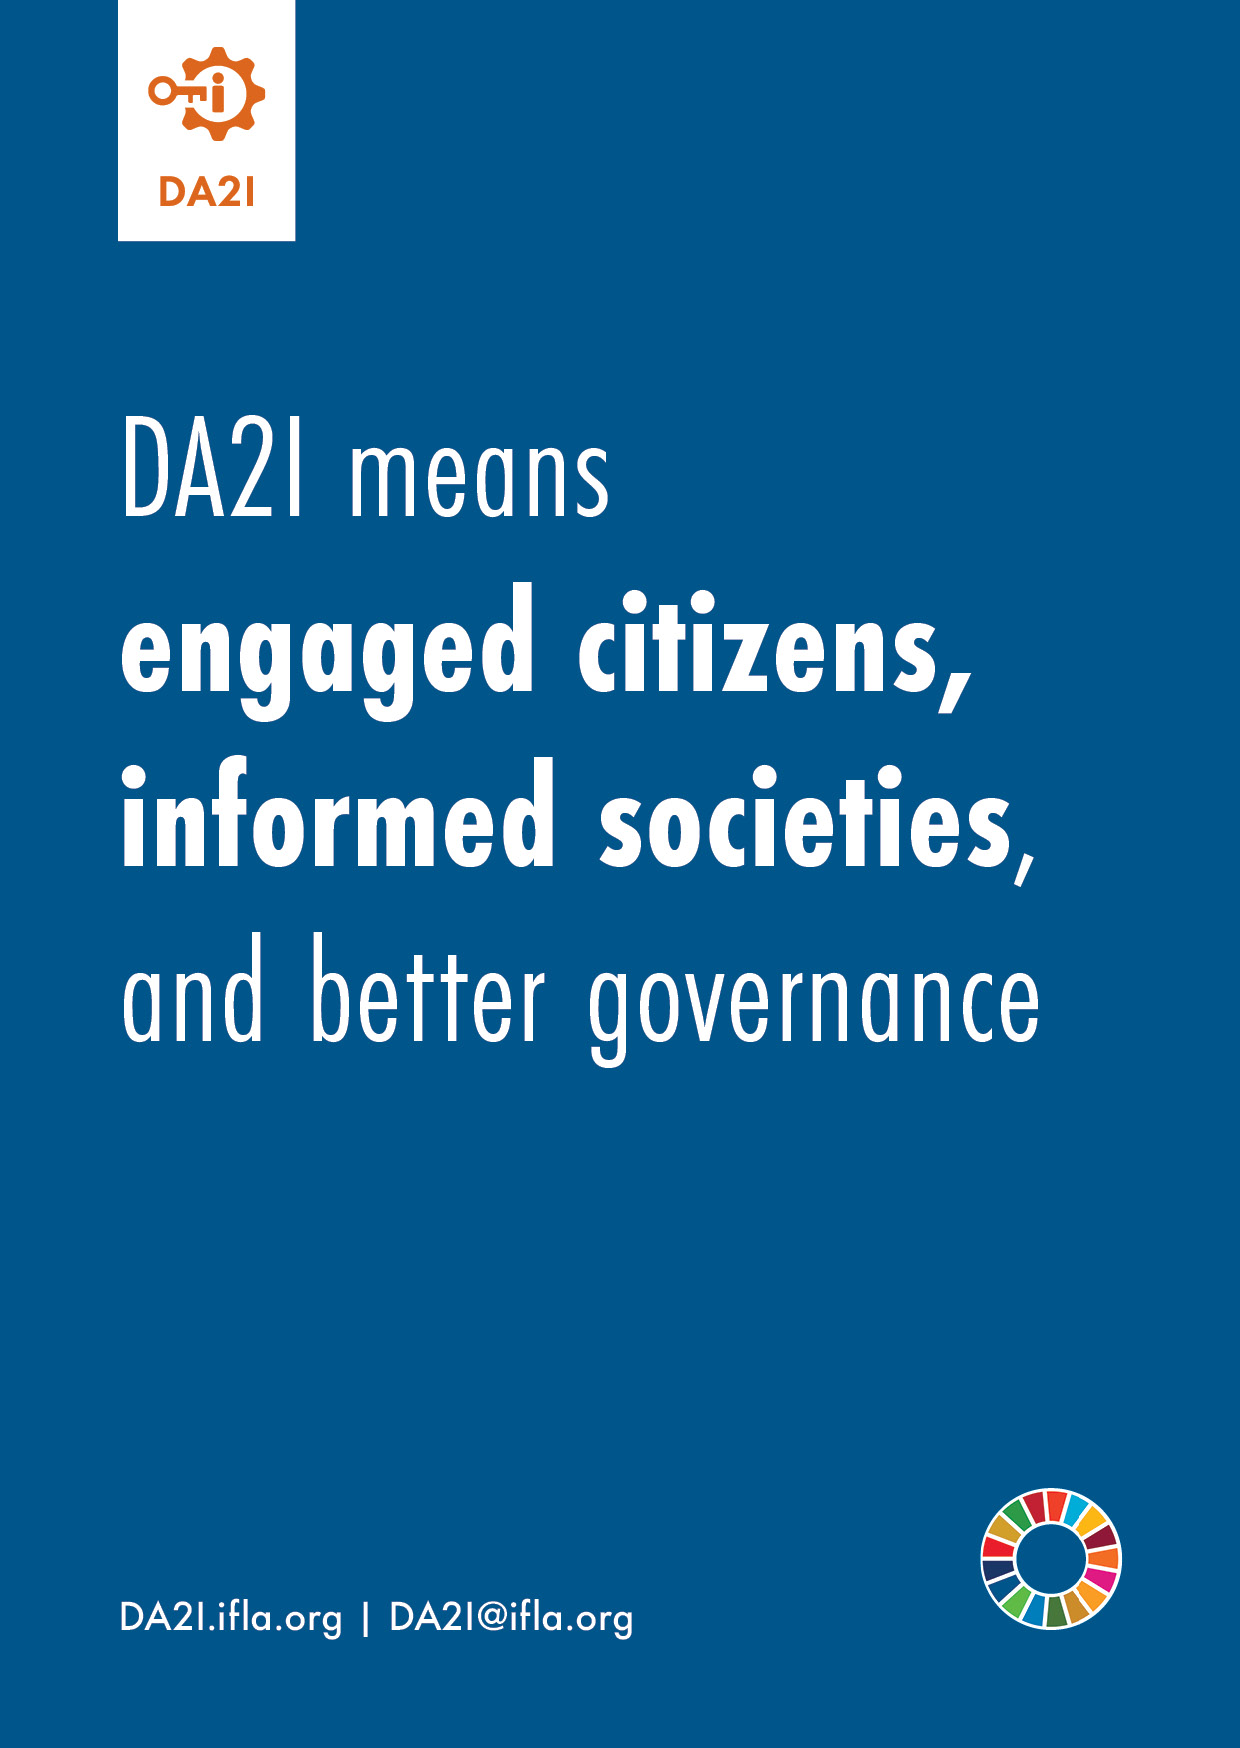 DA2I means engaged citizens, informed societies, and better governance